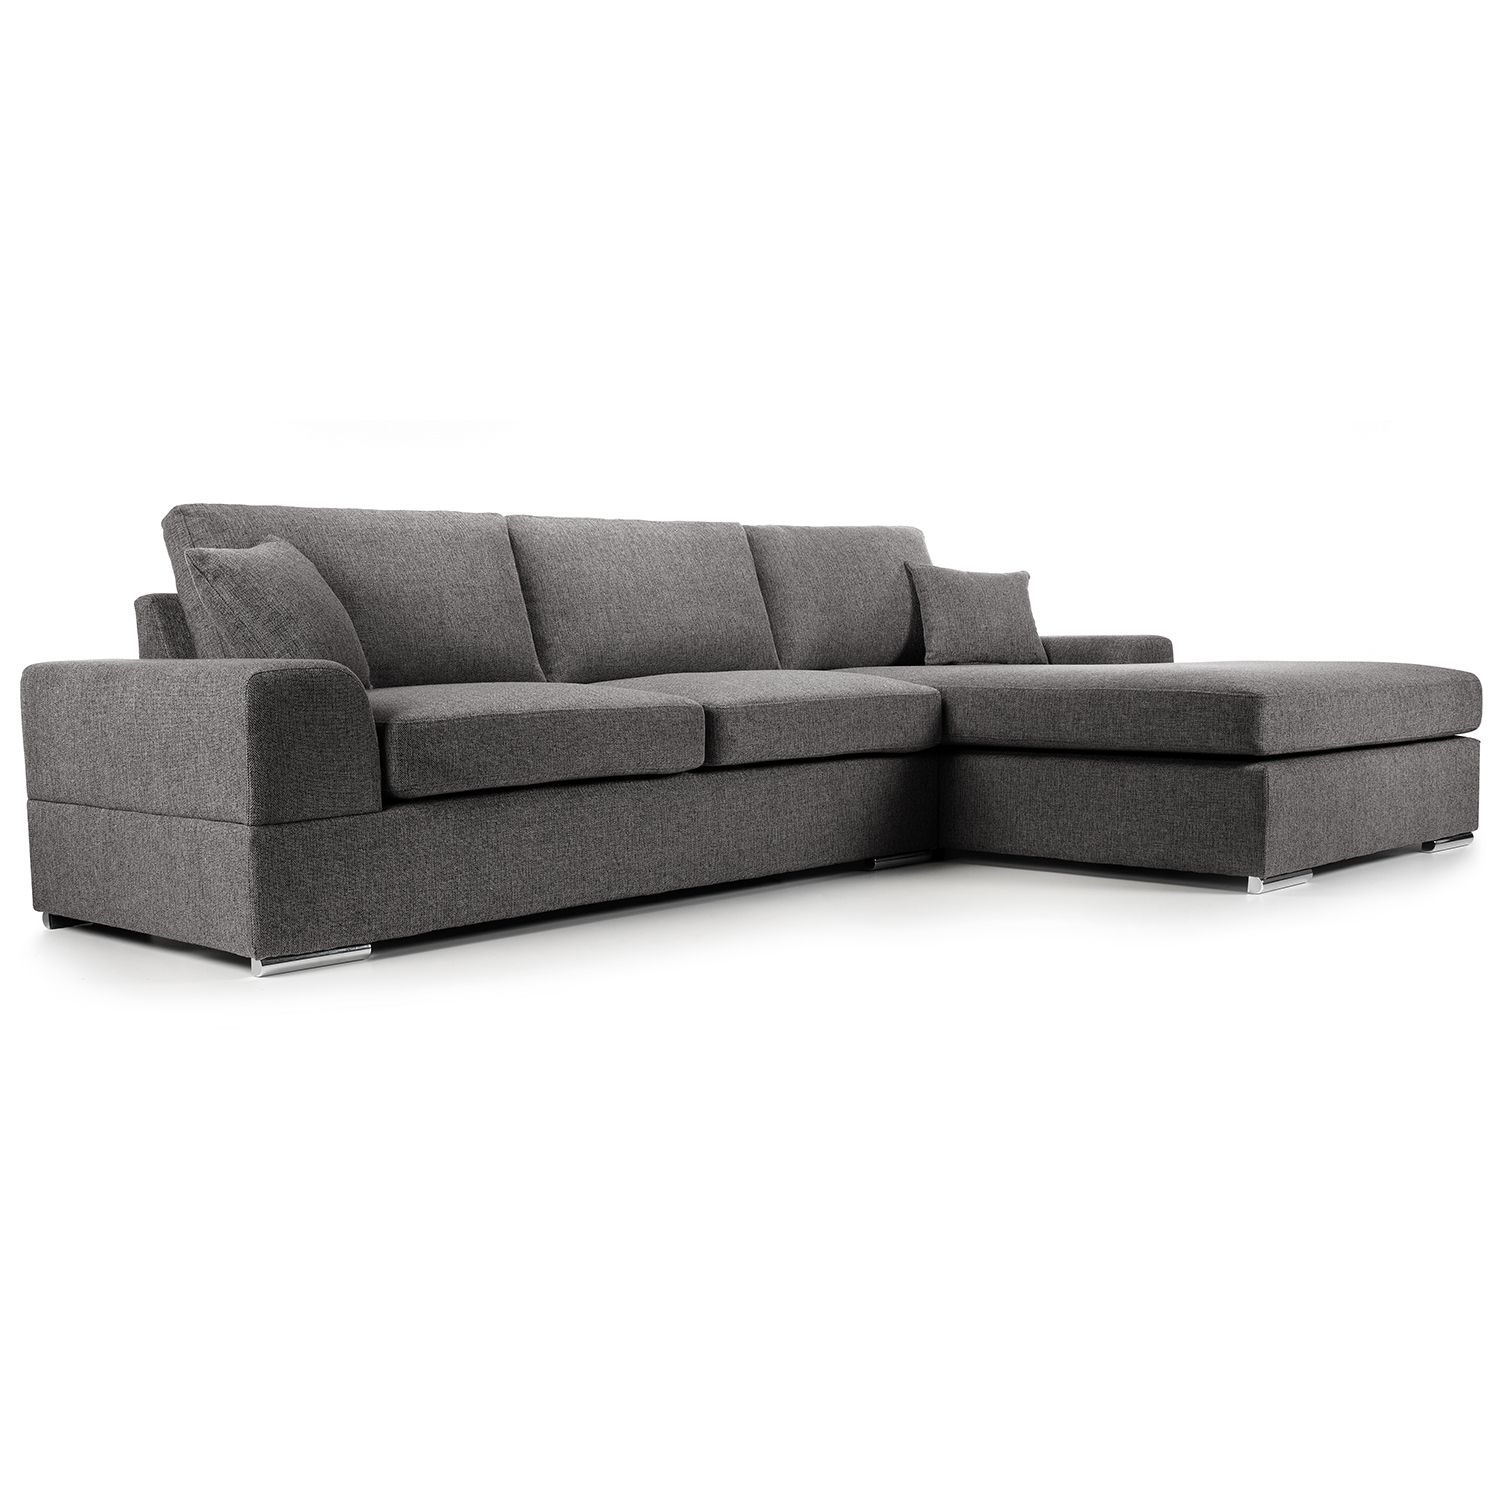 799 Vedori Corner Chaise Sofa – Next Day Delivery Vedori Corner